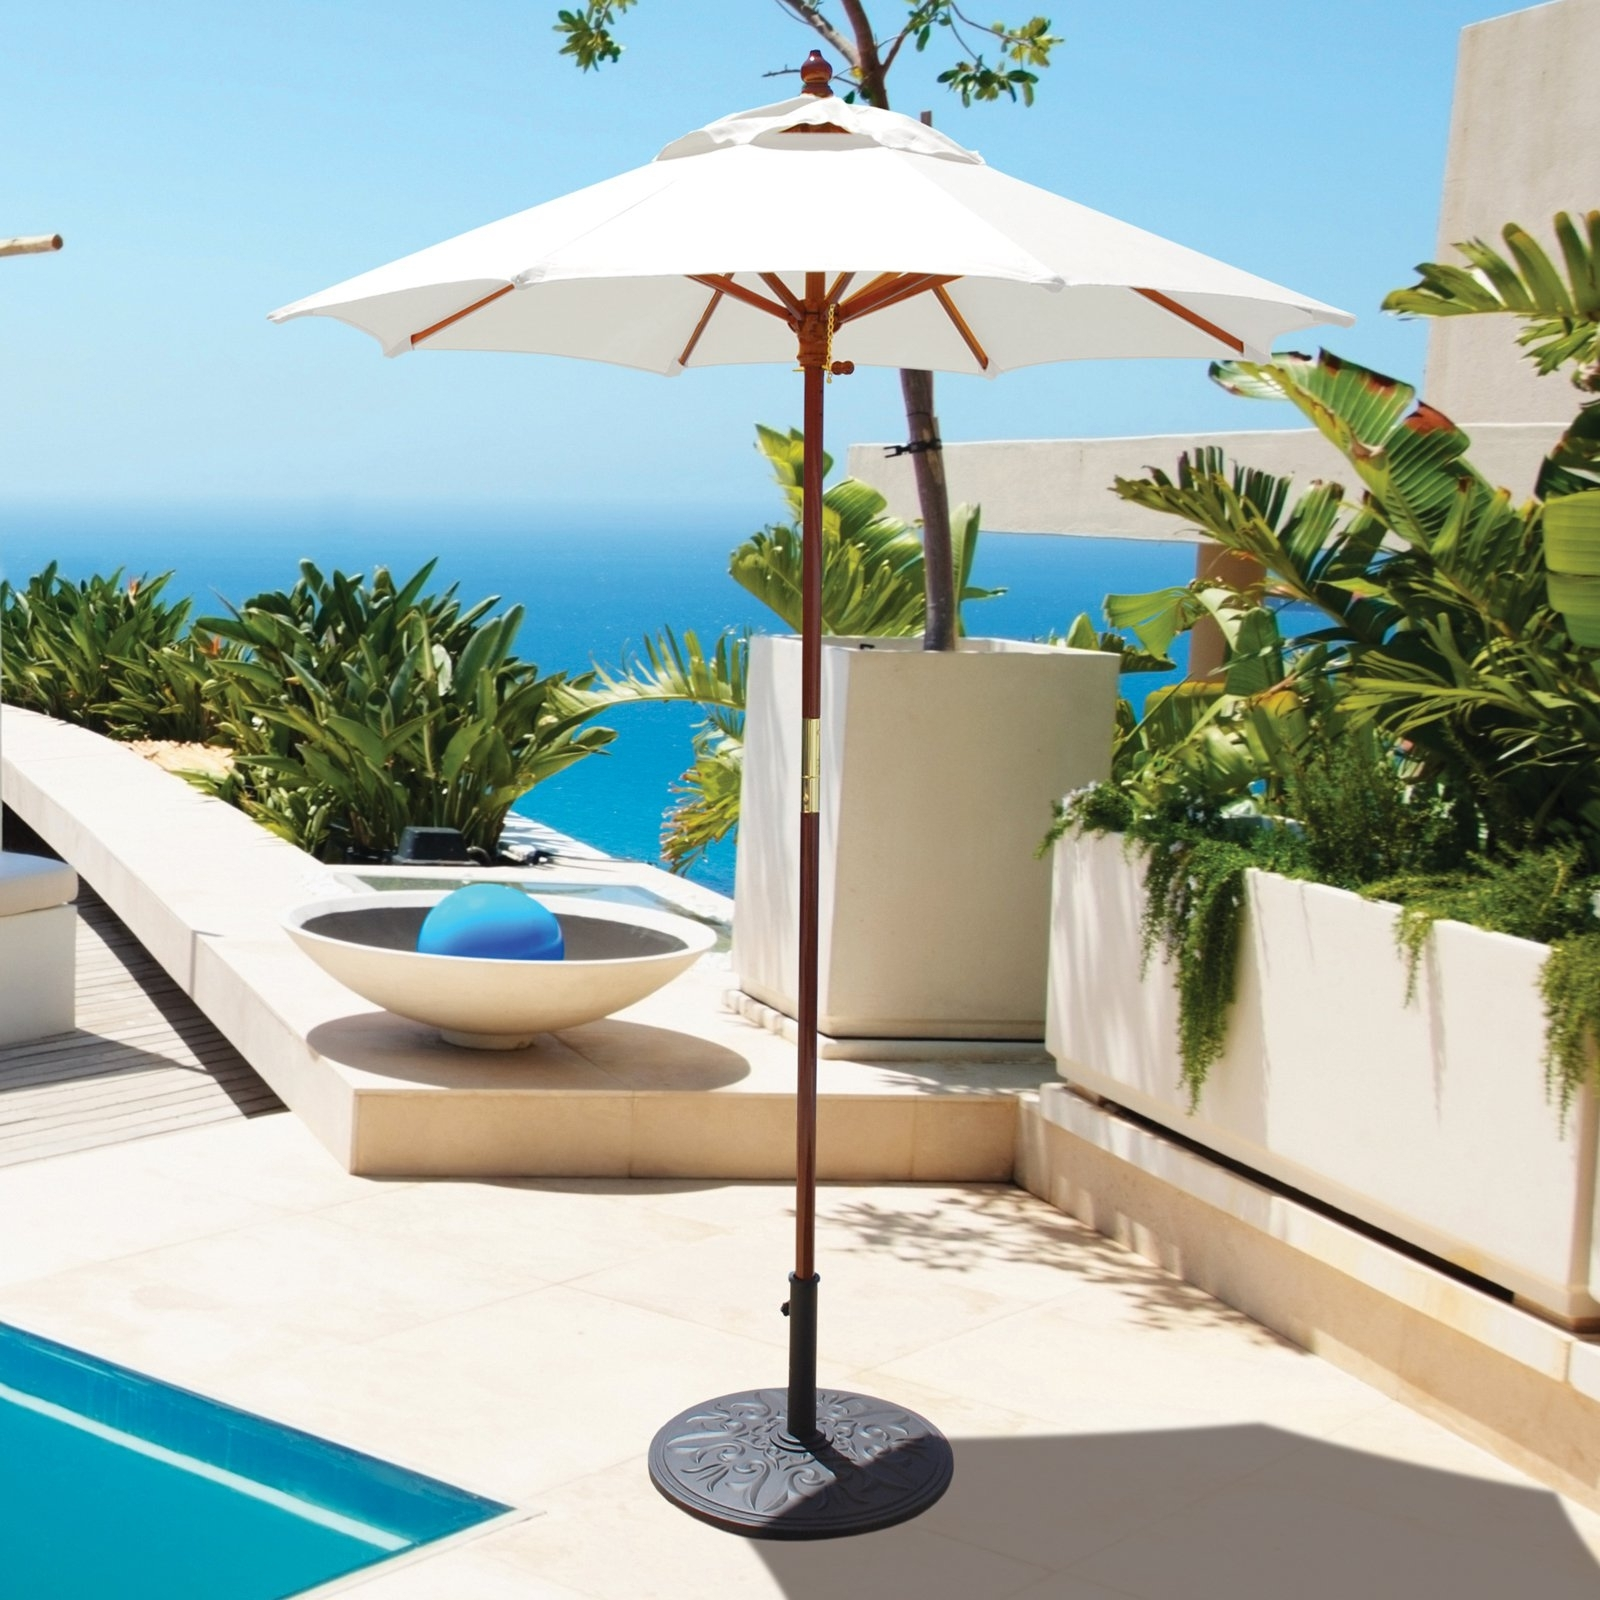 6 Ft Patio Umbrellas For Popular Galtech 6 Ft (View 5 of 20)